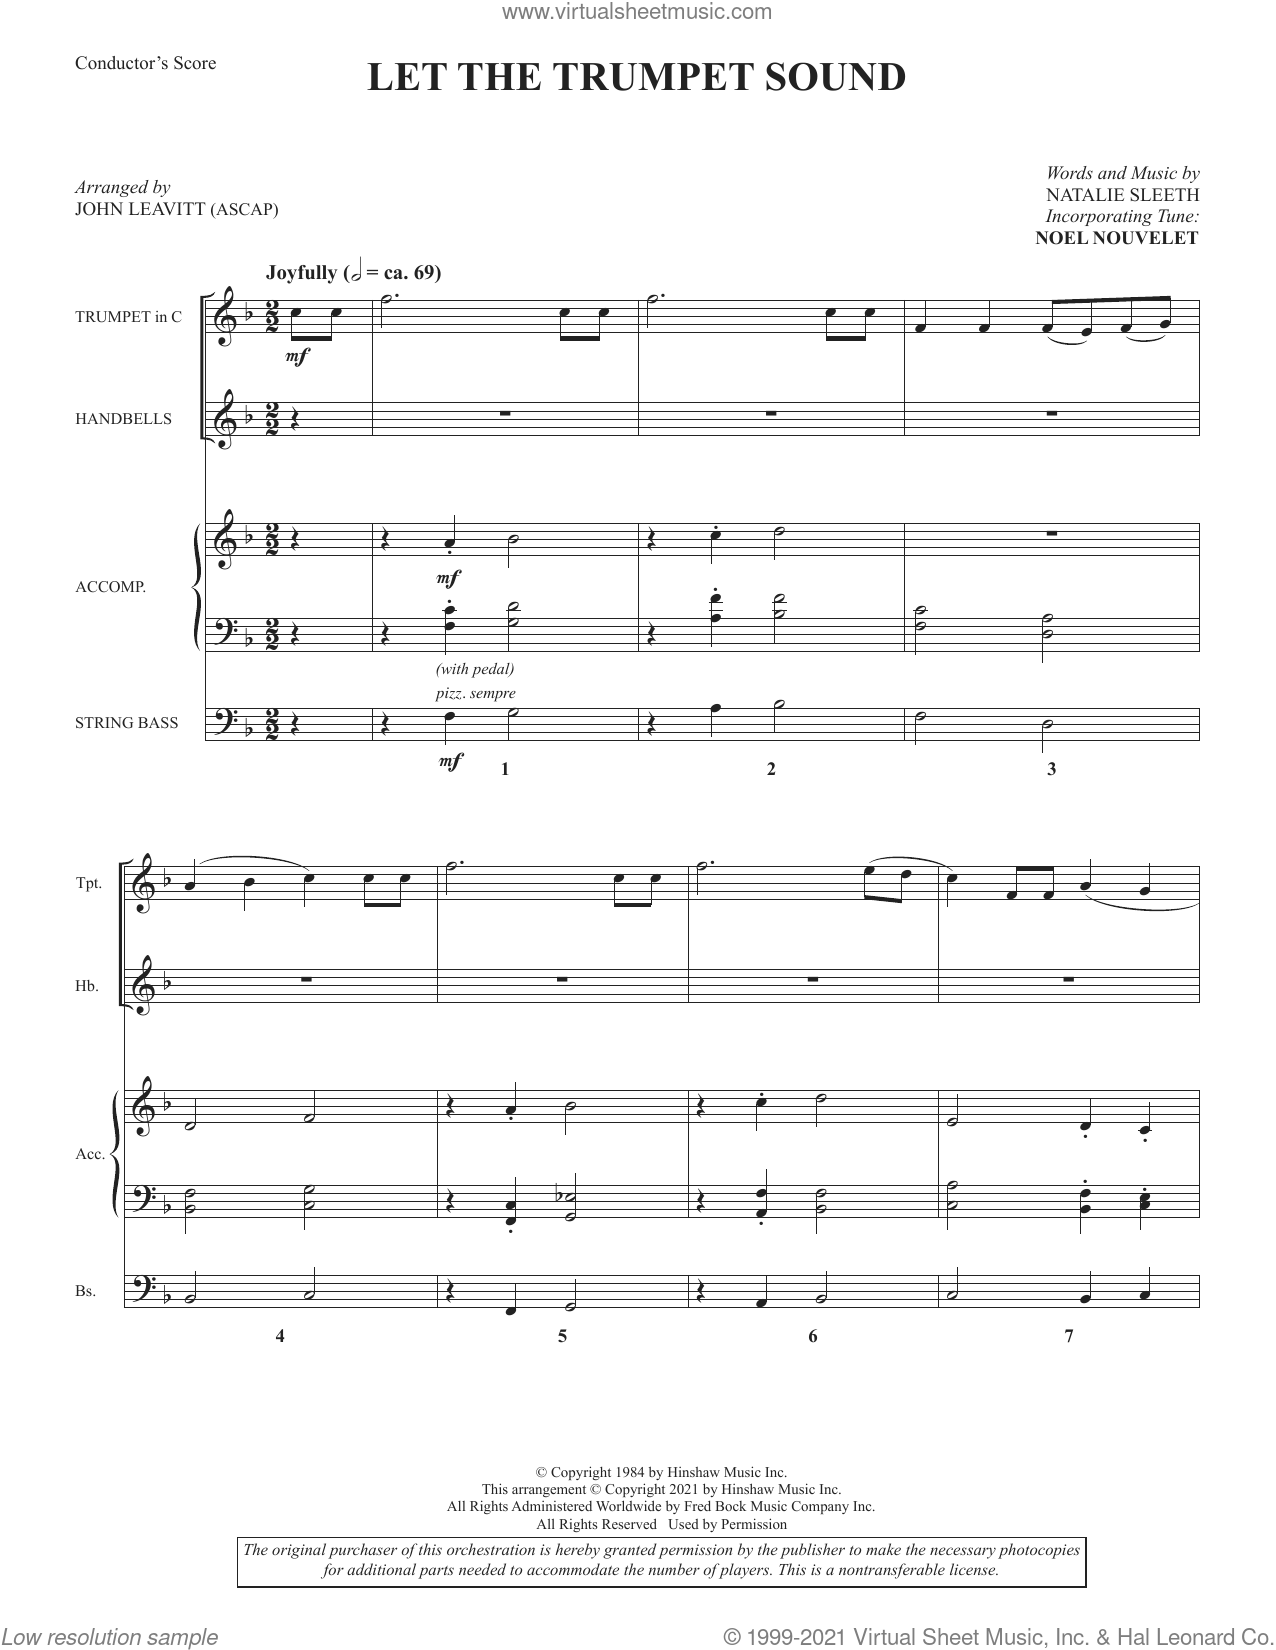 Let the Trumpet Sound (arr. John Leavitt) (COMPLETE) sheet music for orchestra/band by John Leavitt and NATALIE SLEETH, intermediate skill level